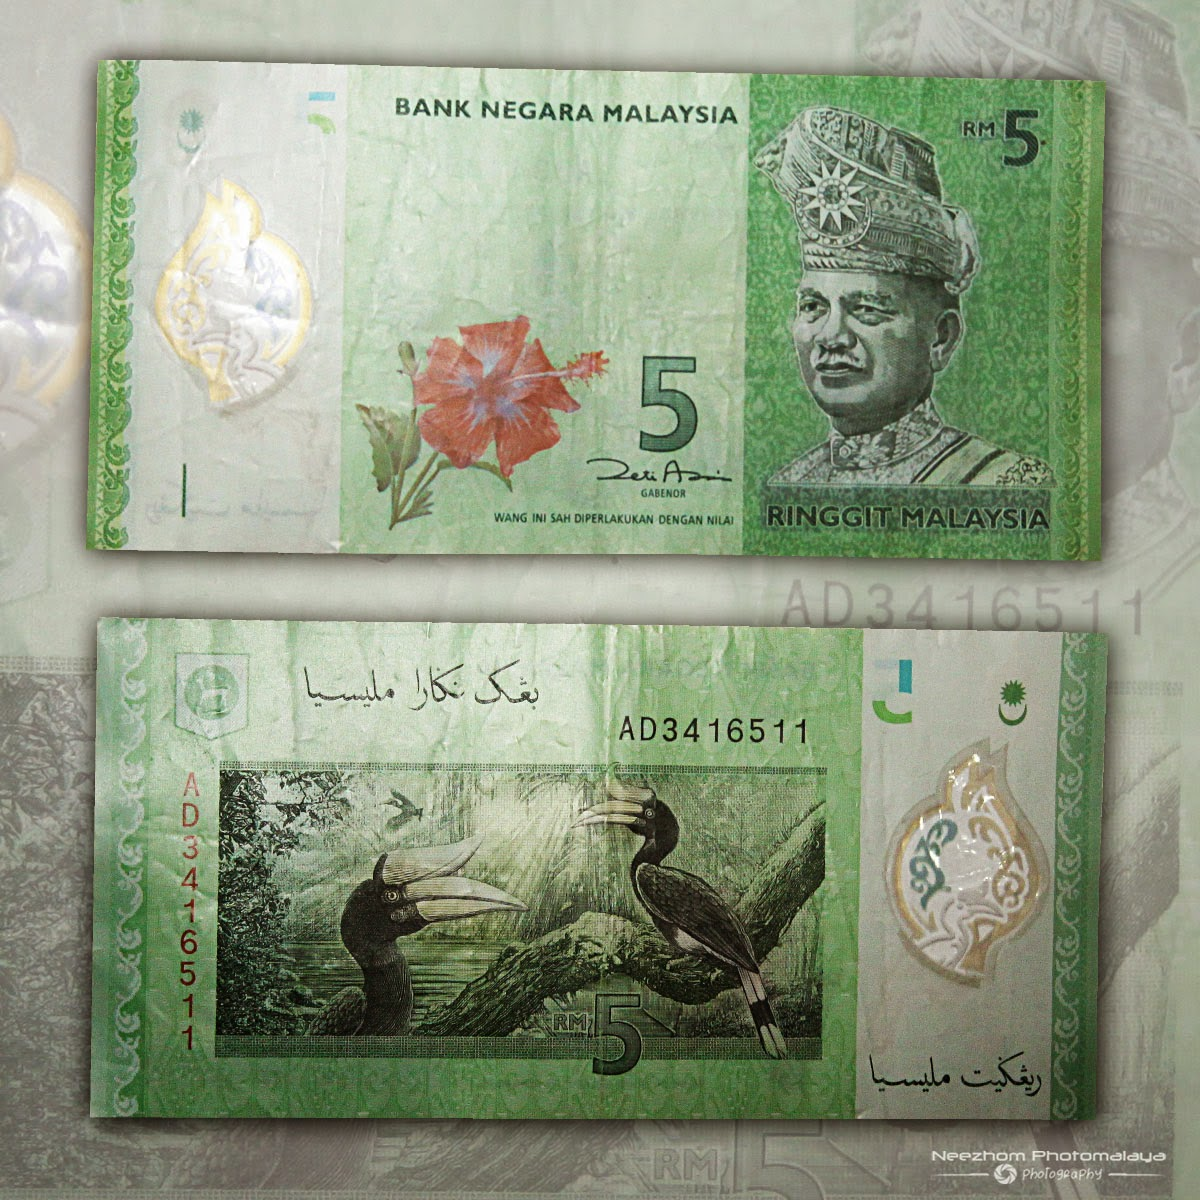 Malaysia 5 Ringgit 4th series polymer banknote